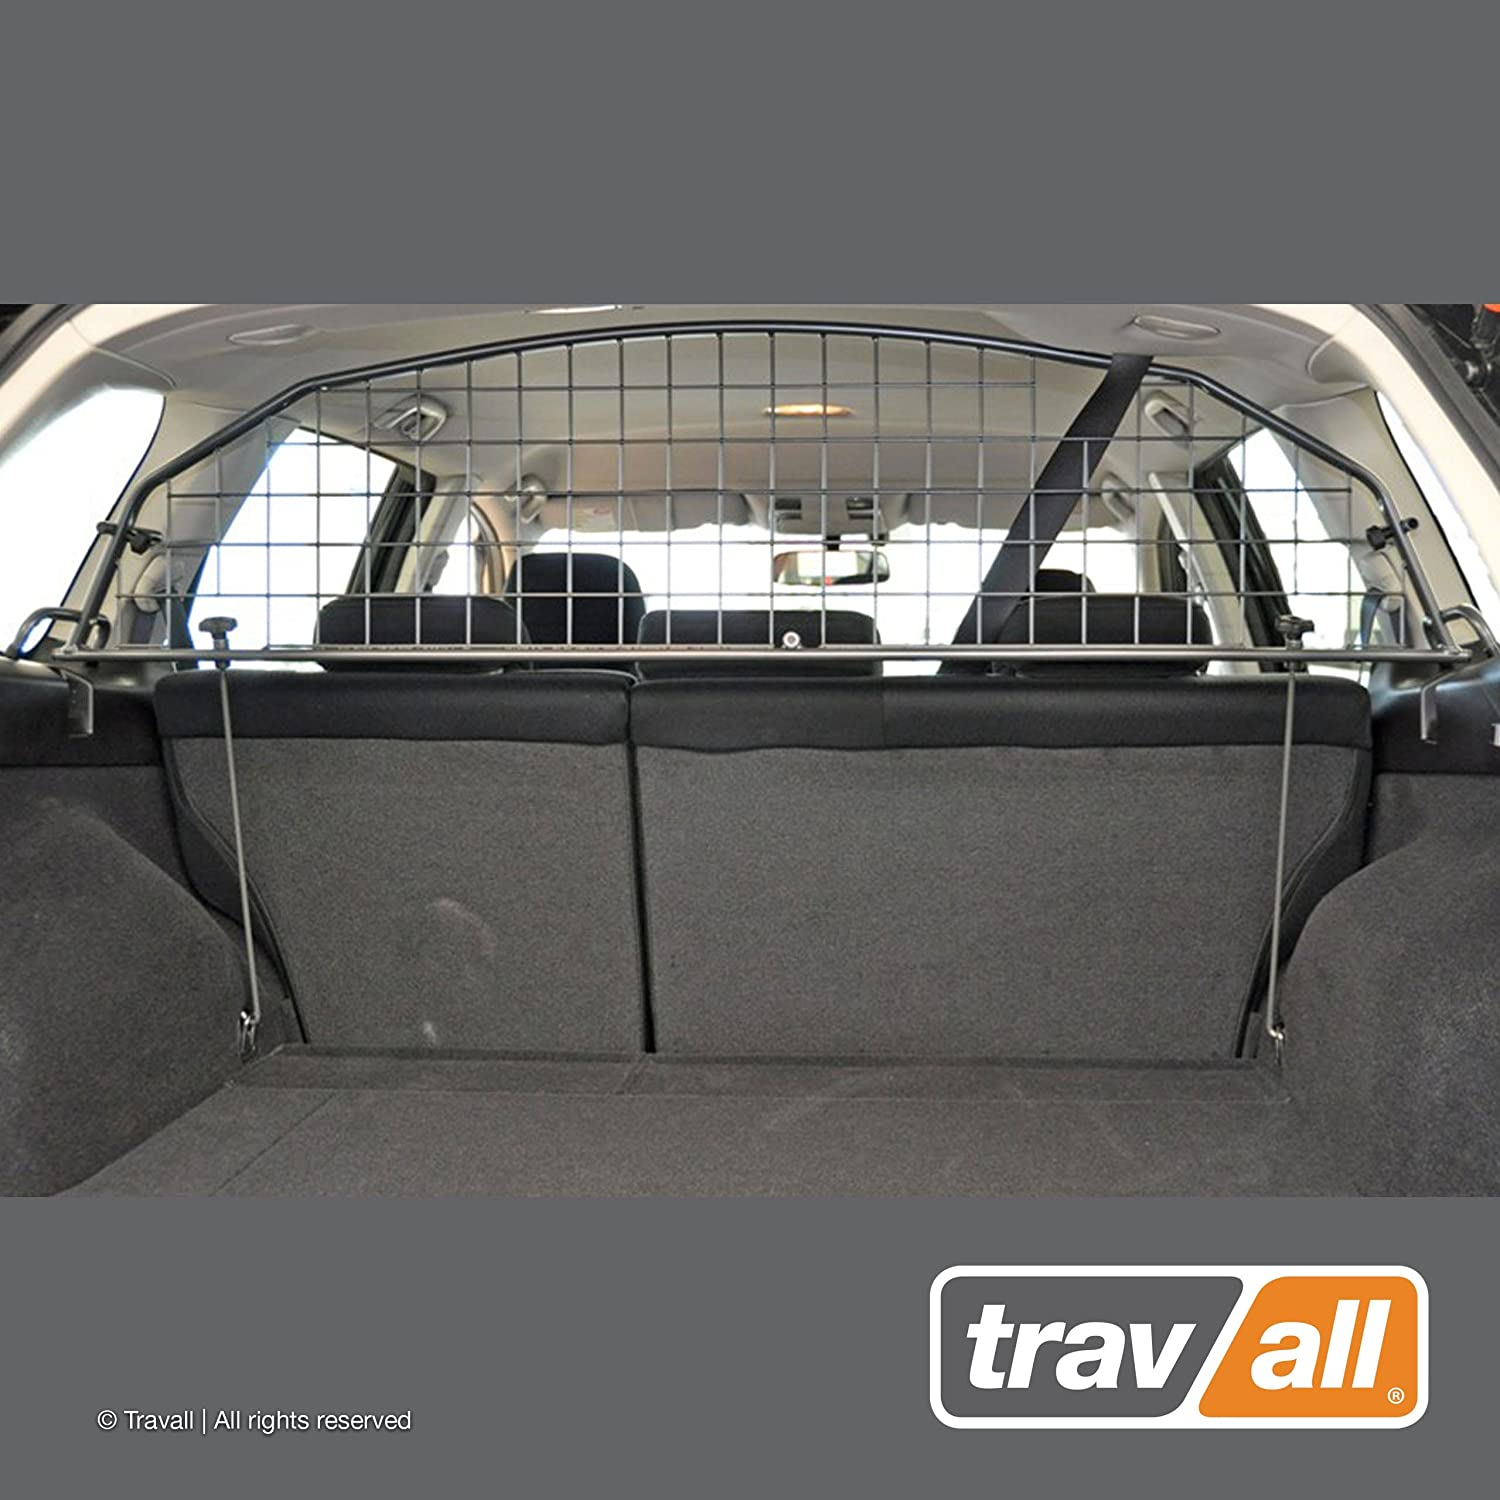 Travall Guard Compatible with Subaru Outback and Legacy Wagon 2009-2014 TDG1182 – Rattle-Free Steel Pet Barrier